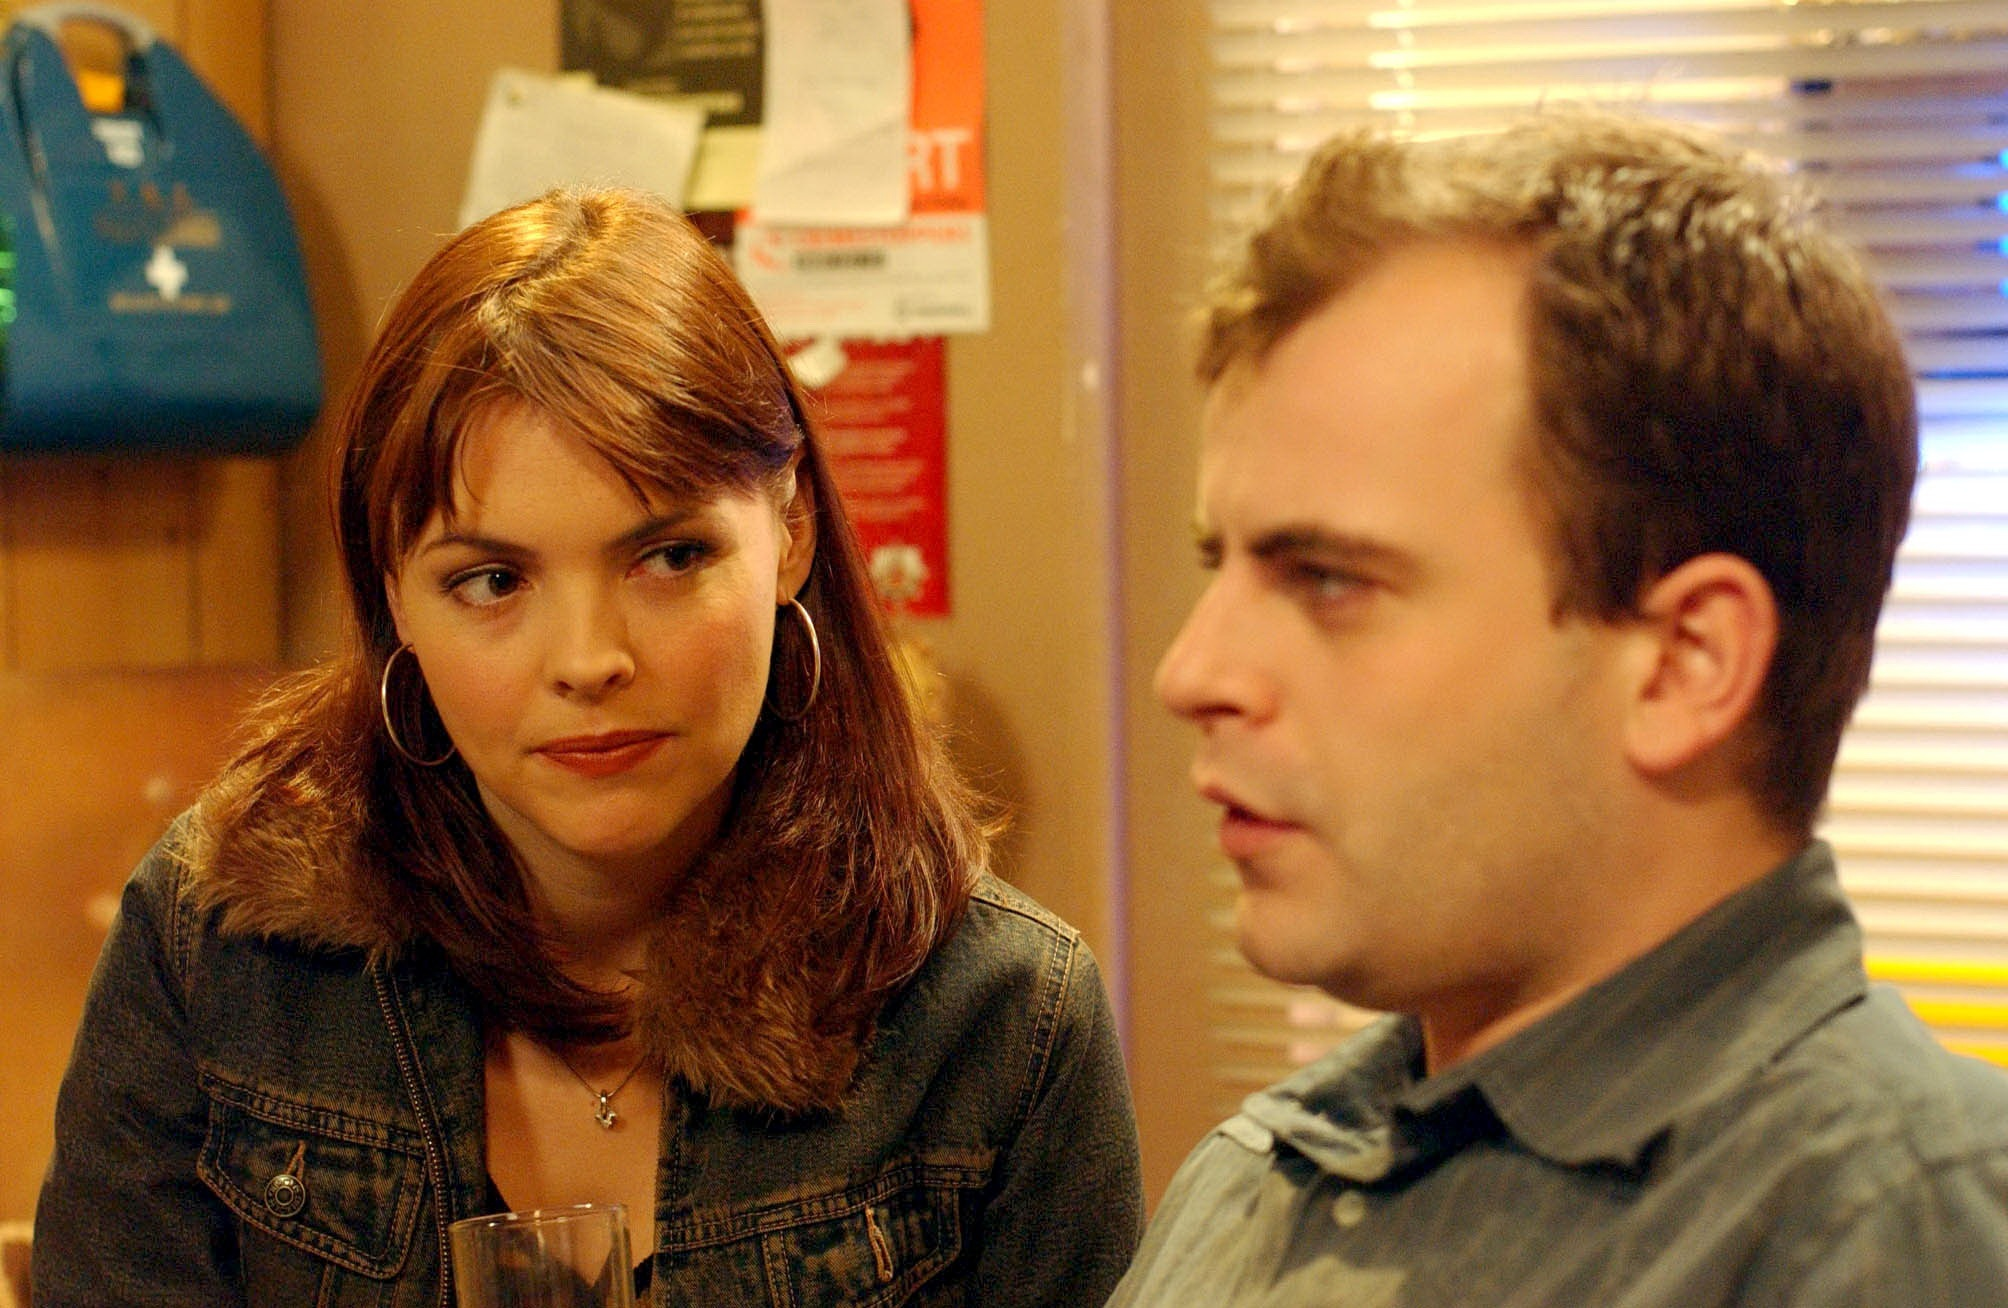 Editorial use only. Exclusive - Premium Rates Apply. Call your Account Manager for pricing. Mandatory Credit: Photo by ITV/REX/Shutterstock (699825dn) 'Coronation Street' TV - 2003 - Steve McDonald (Simon Gregson) gets the shock of his life when Tracy Barlow (Kate Ford) tells him that he is the father of her baby. ITV ARCHIVE